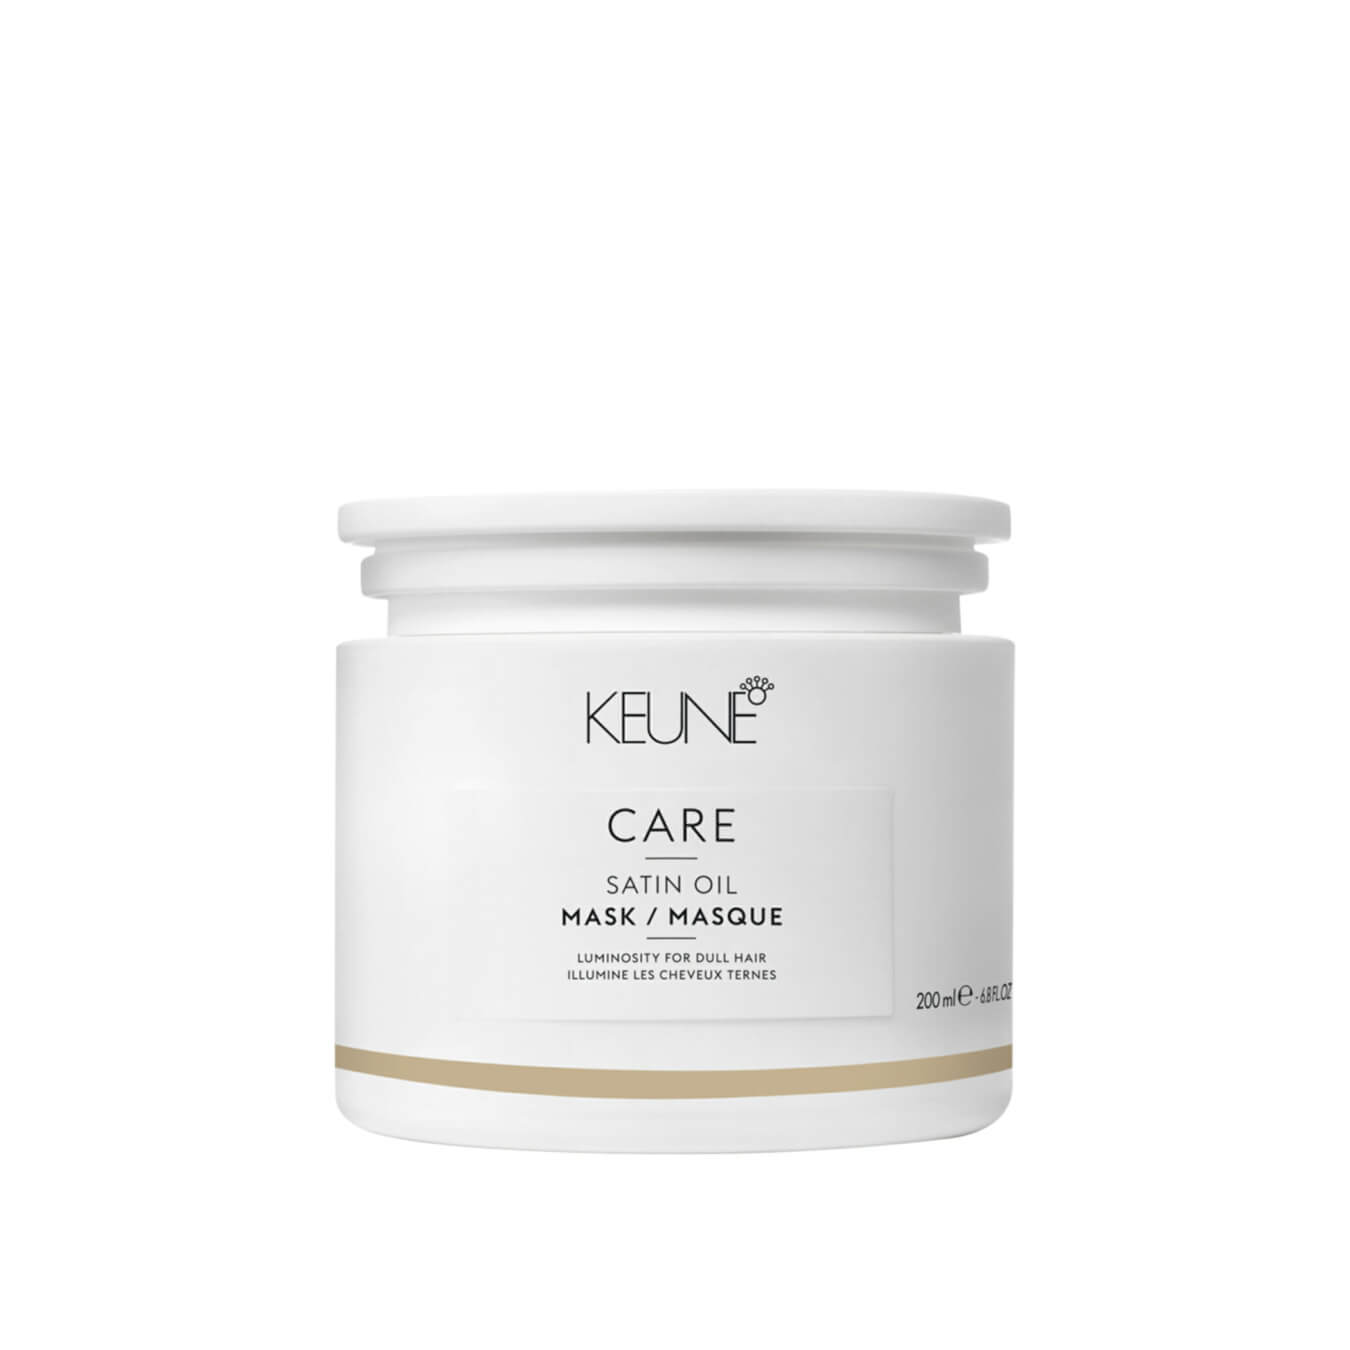 Koop Keune Care Satin Oil Mask 200ml